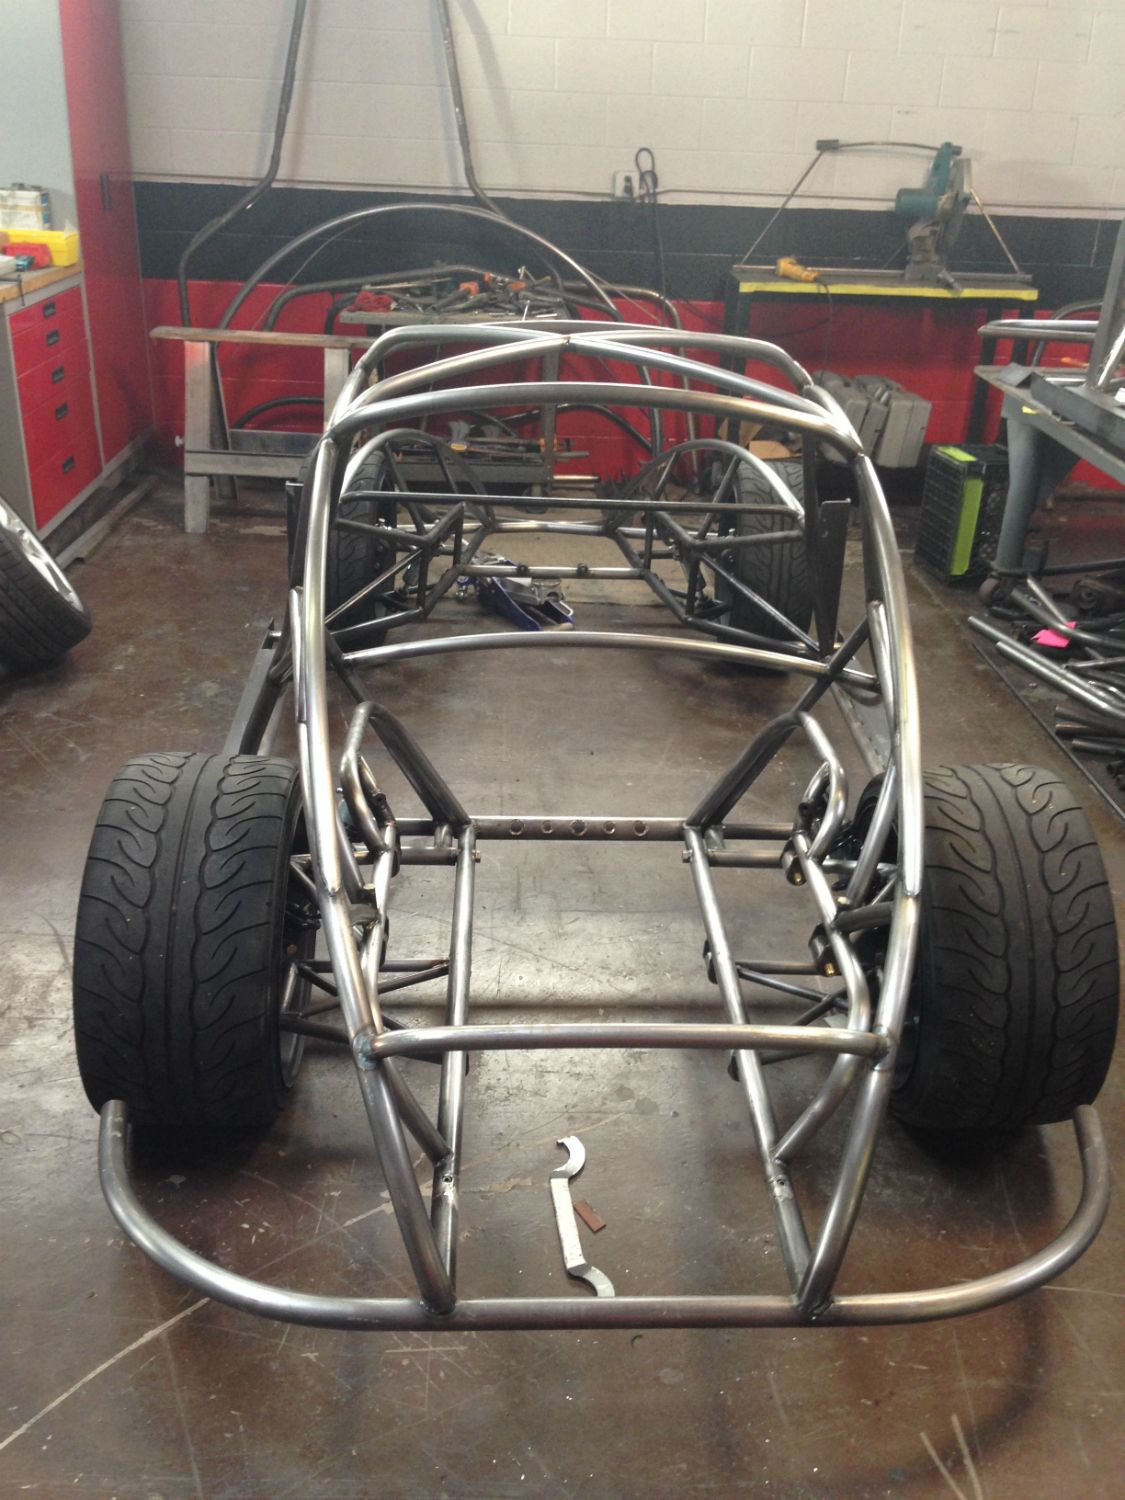 356 Coupe Classic Psi Retro Classics Spaceframe Chassis